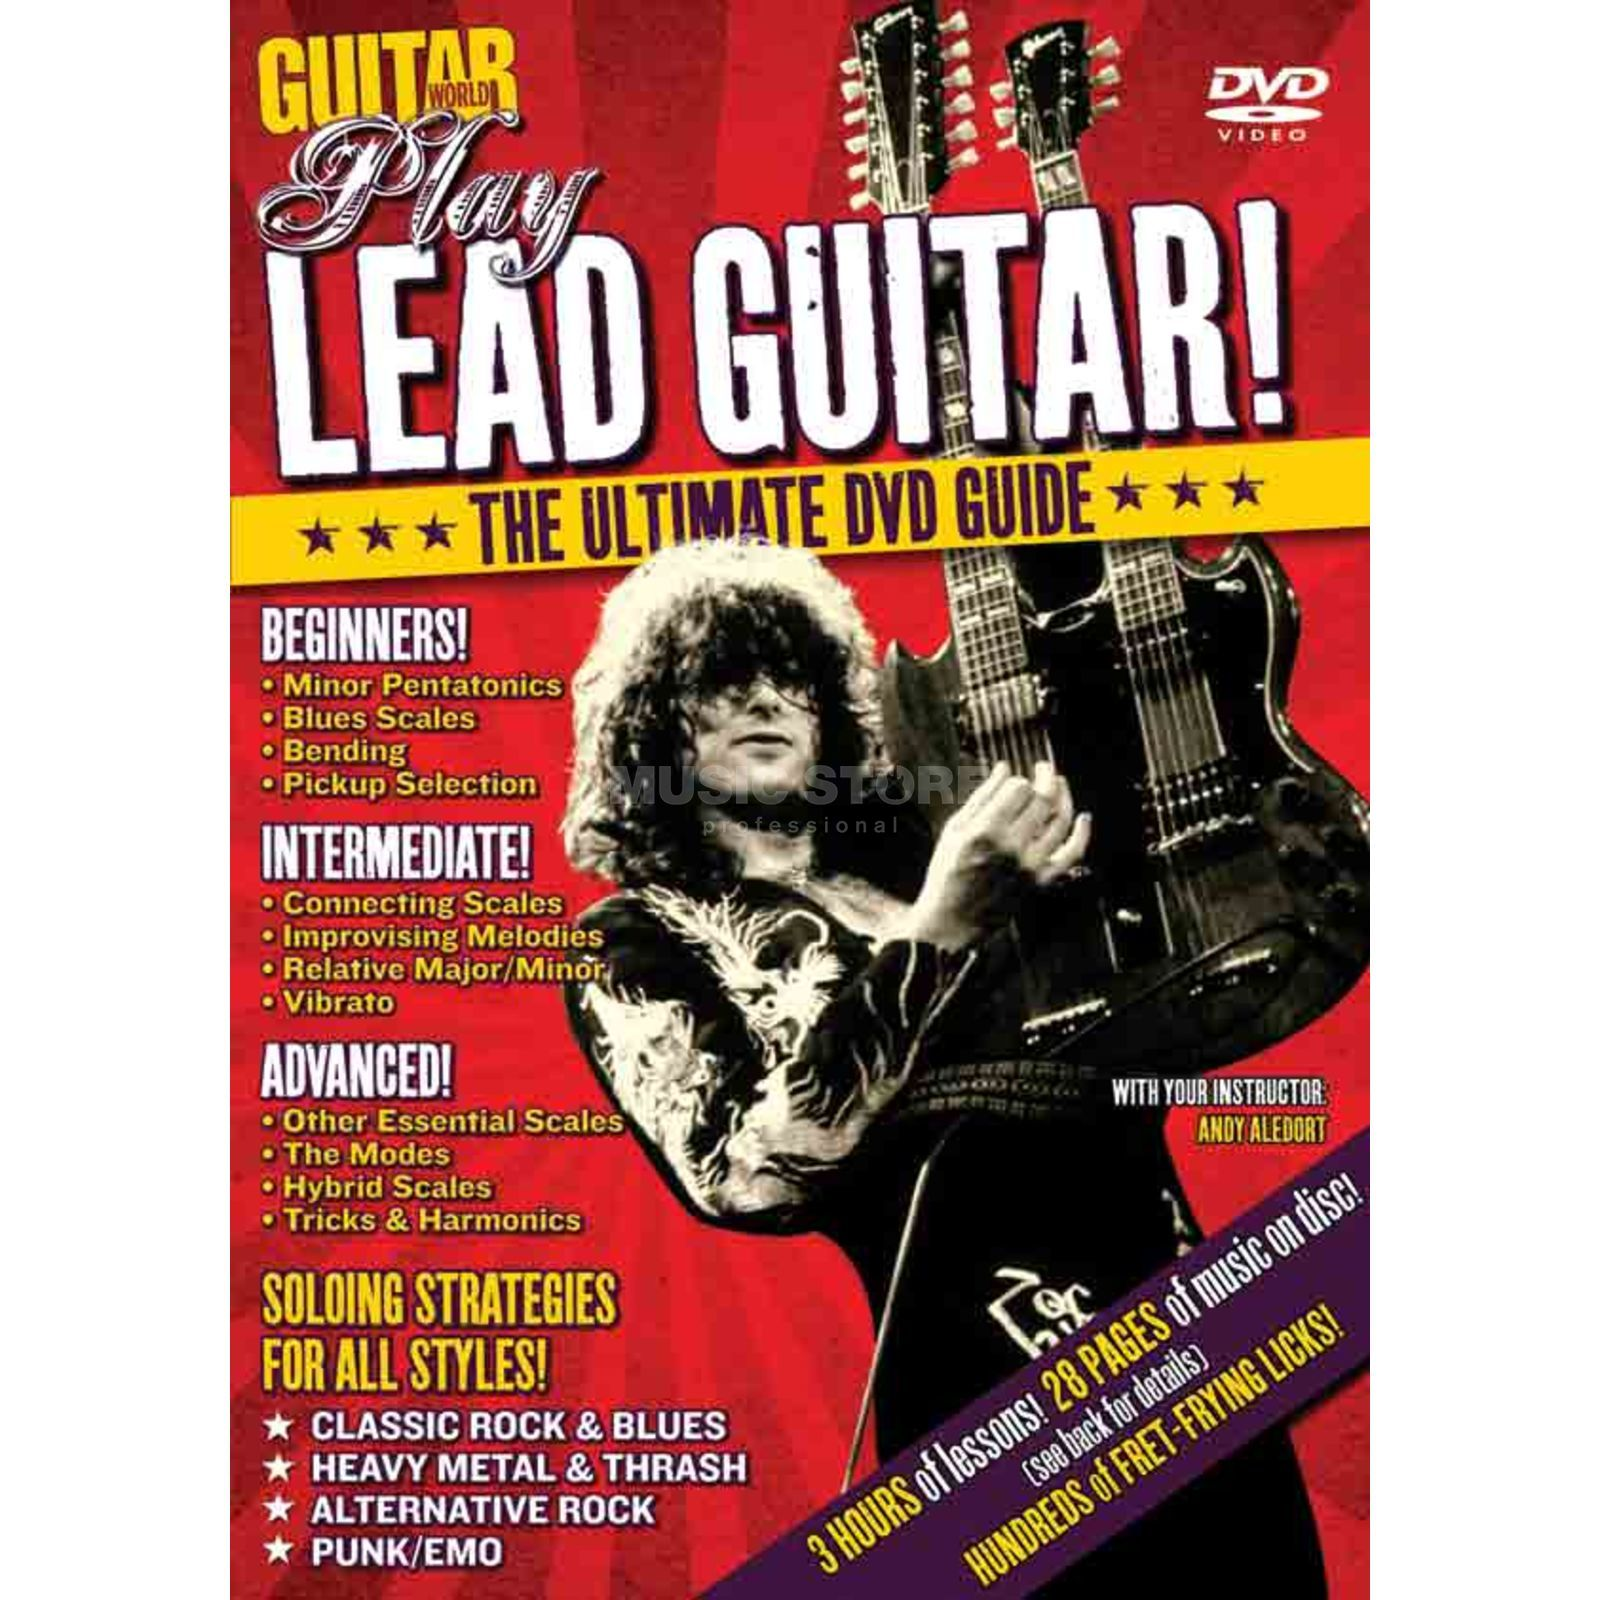 Alfred Music Play Lead Guitar! Guitar World DVD Produktbillede